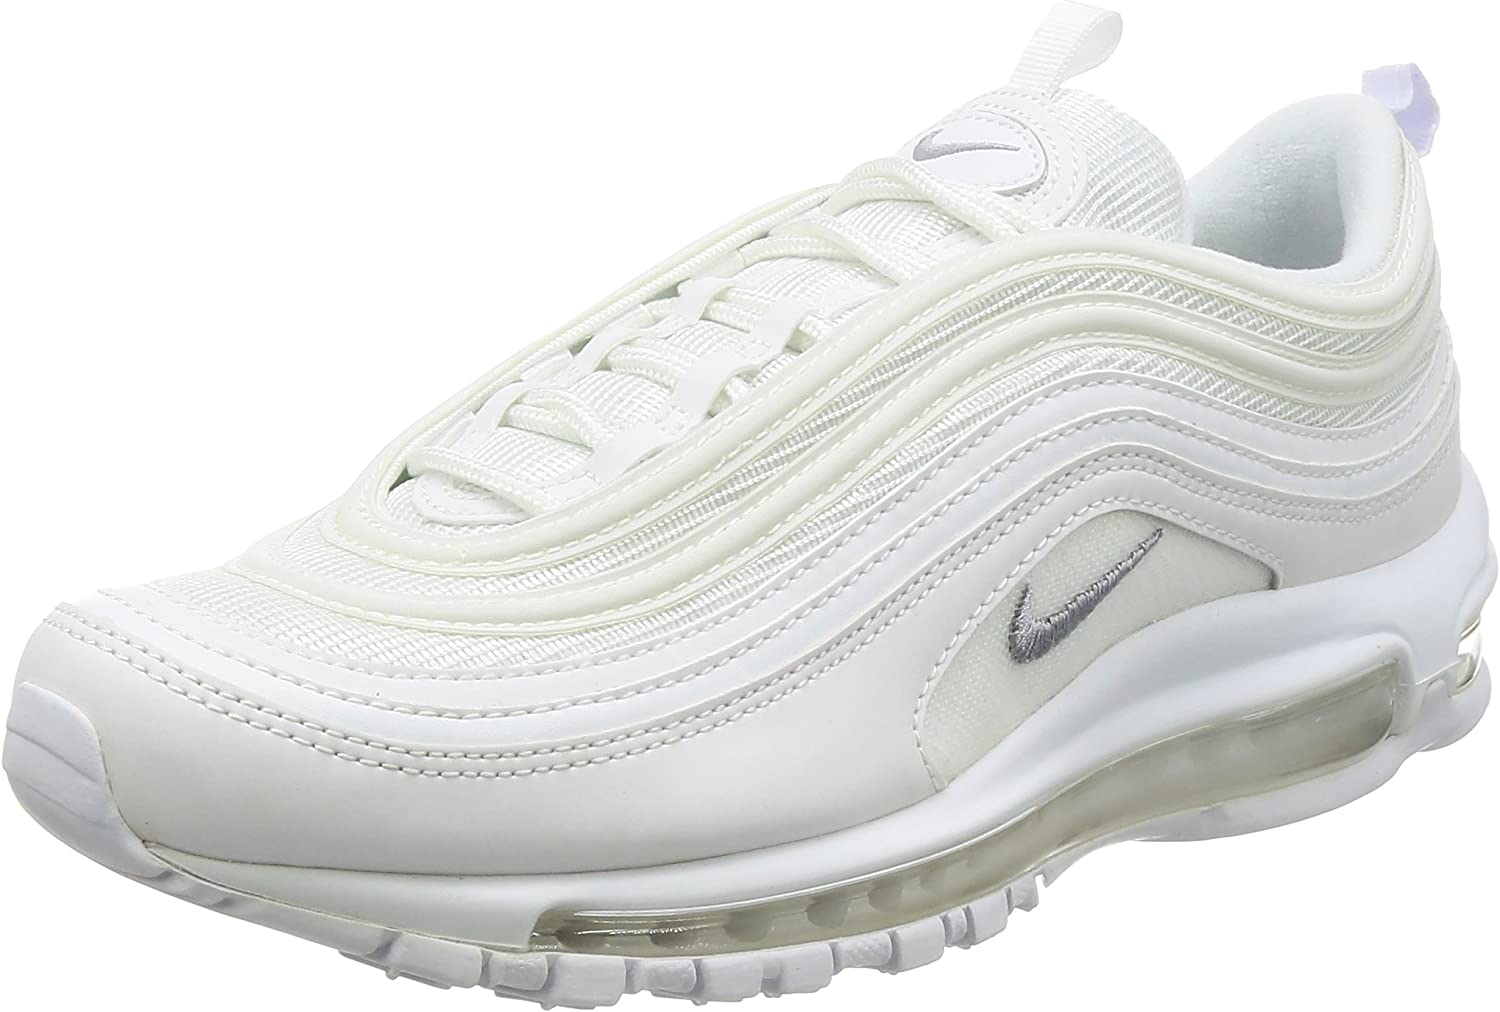 Nike Air Max 97 Men s Shoes White Wolf Grey Black 921826-101